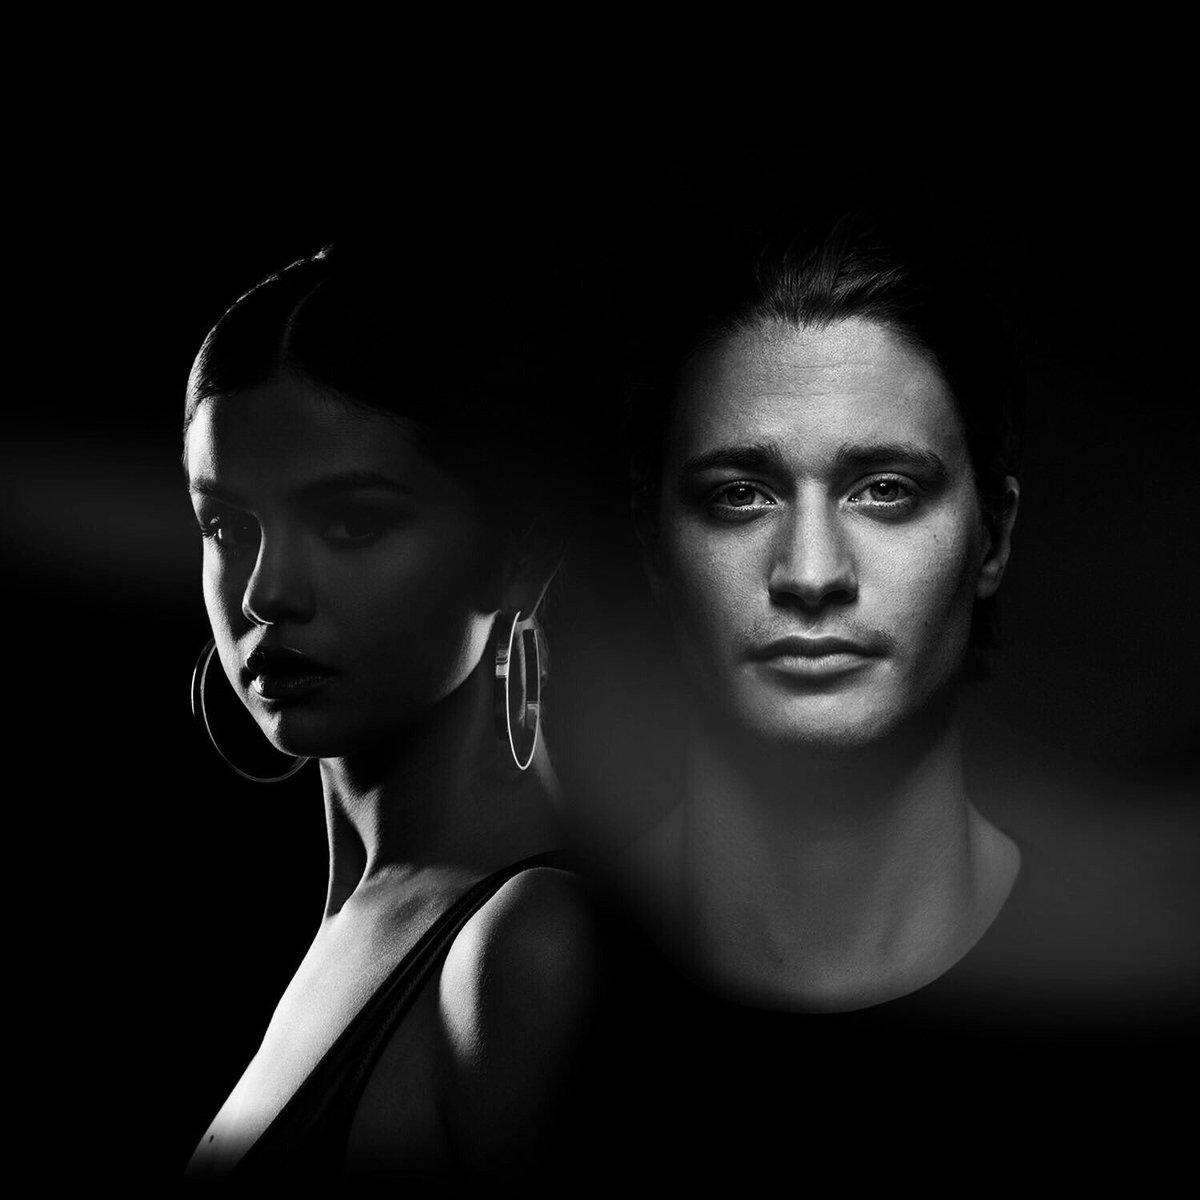 tomorrow @selenagomez @KygoMusic https://t.co/8InyvH7Qf1